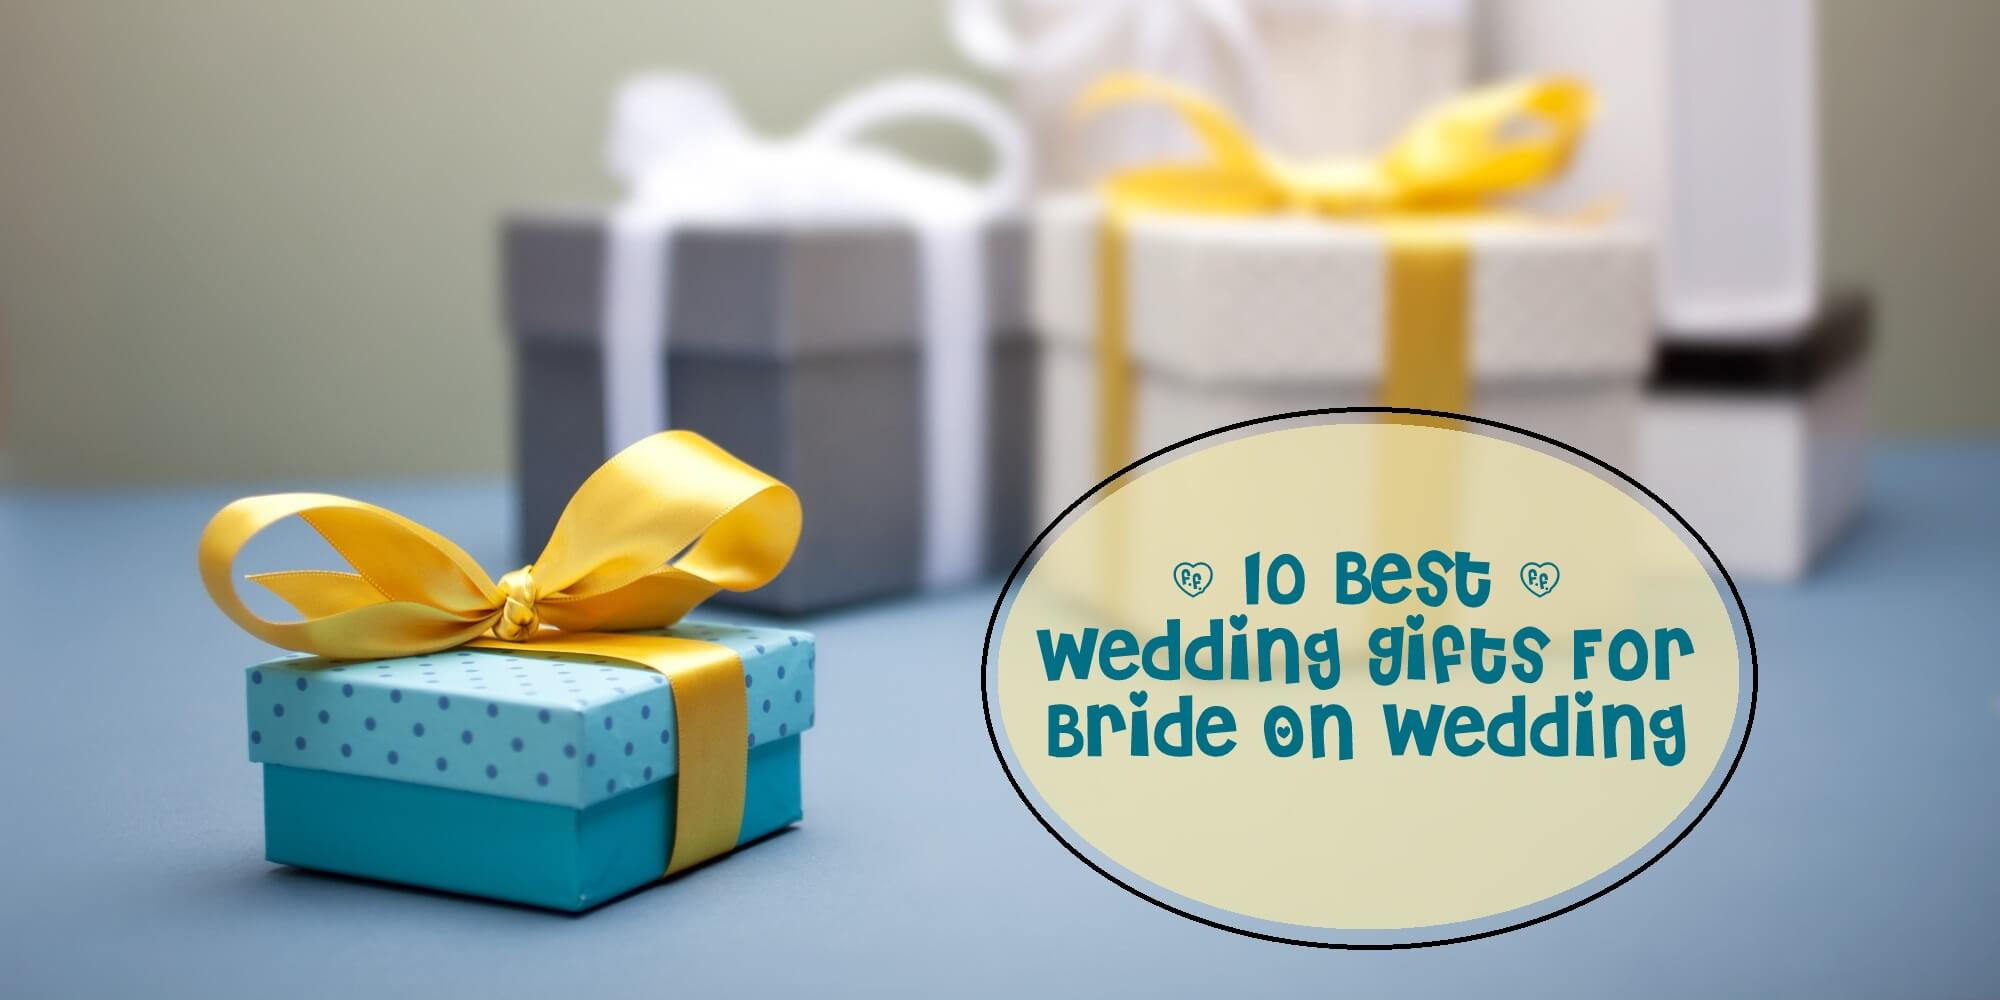 10 Best Wedding Gifts For Bride On Wedding